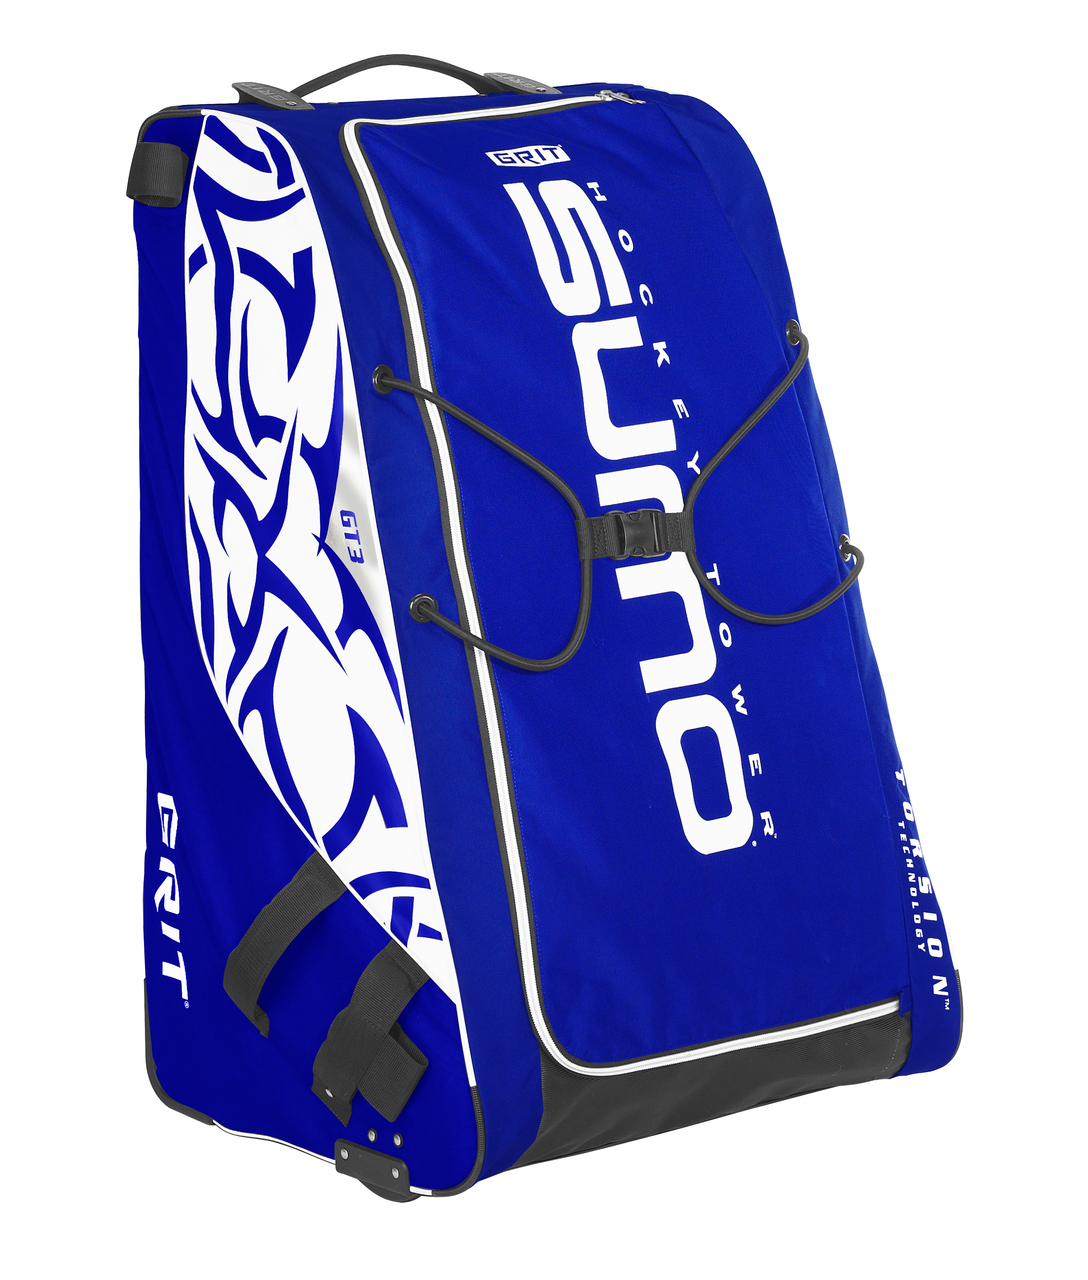 GT3 Sumo Goalie Tower Bag